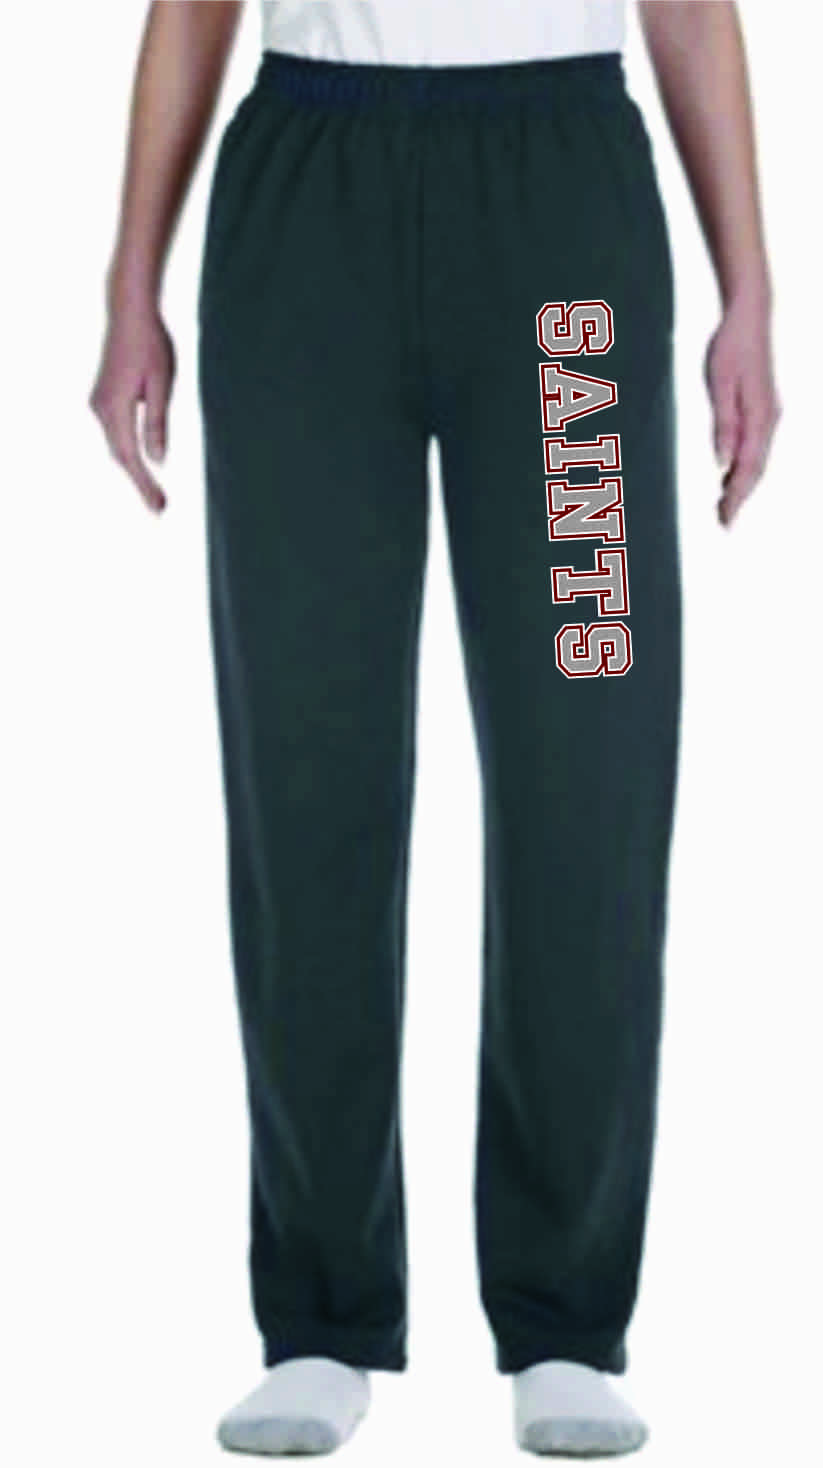 Gray Open Bottom Sweat Pants Unisex w/ Saints Logo